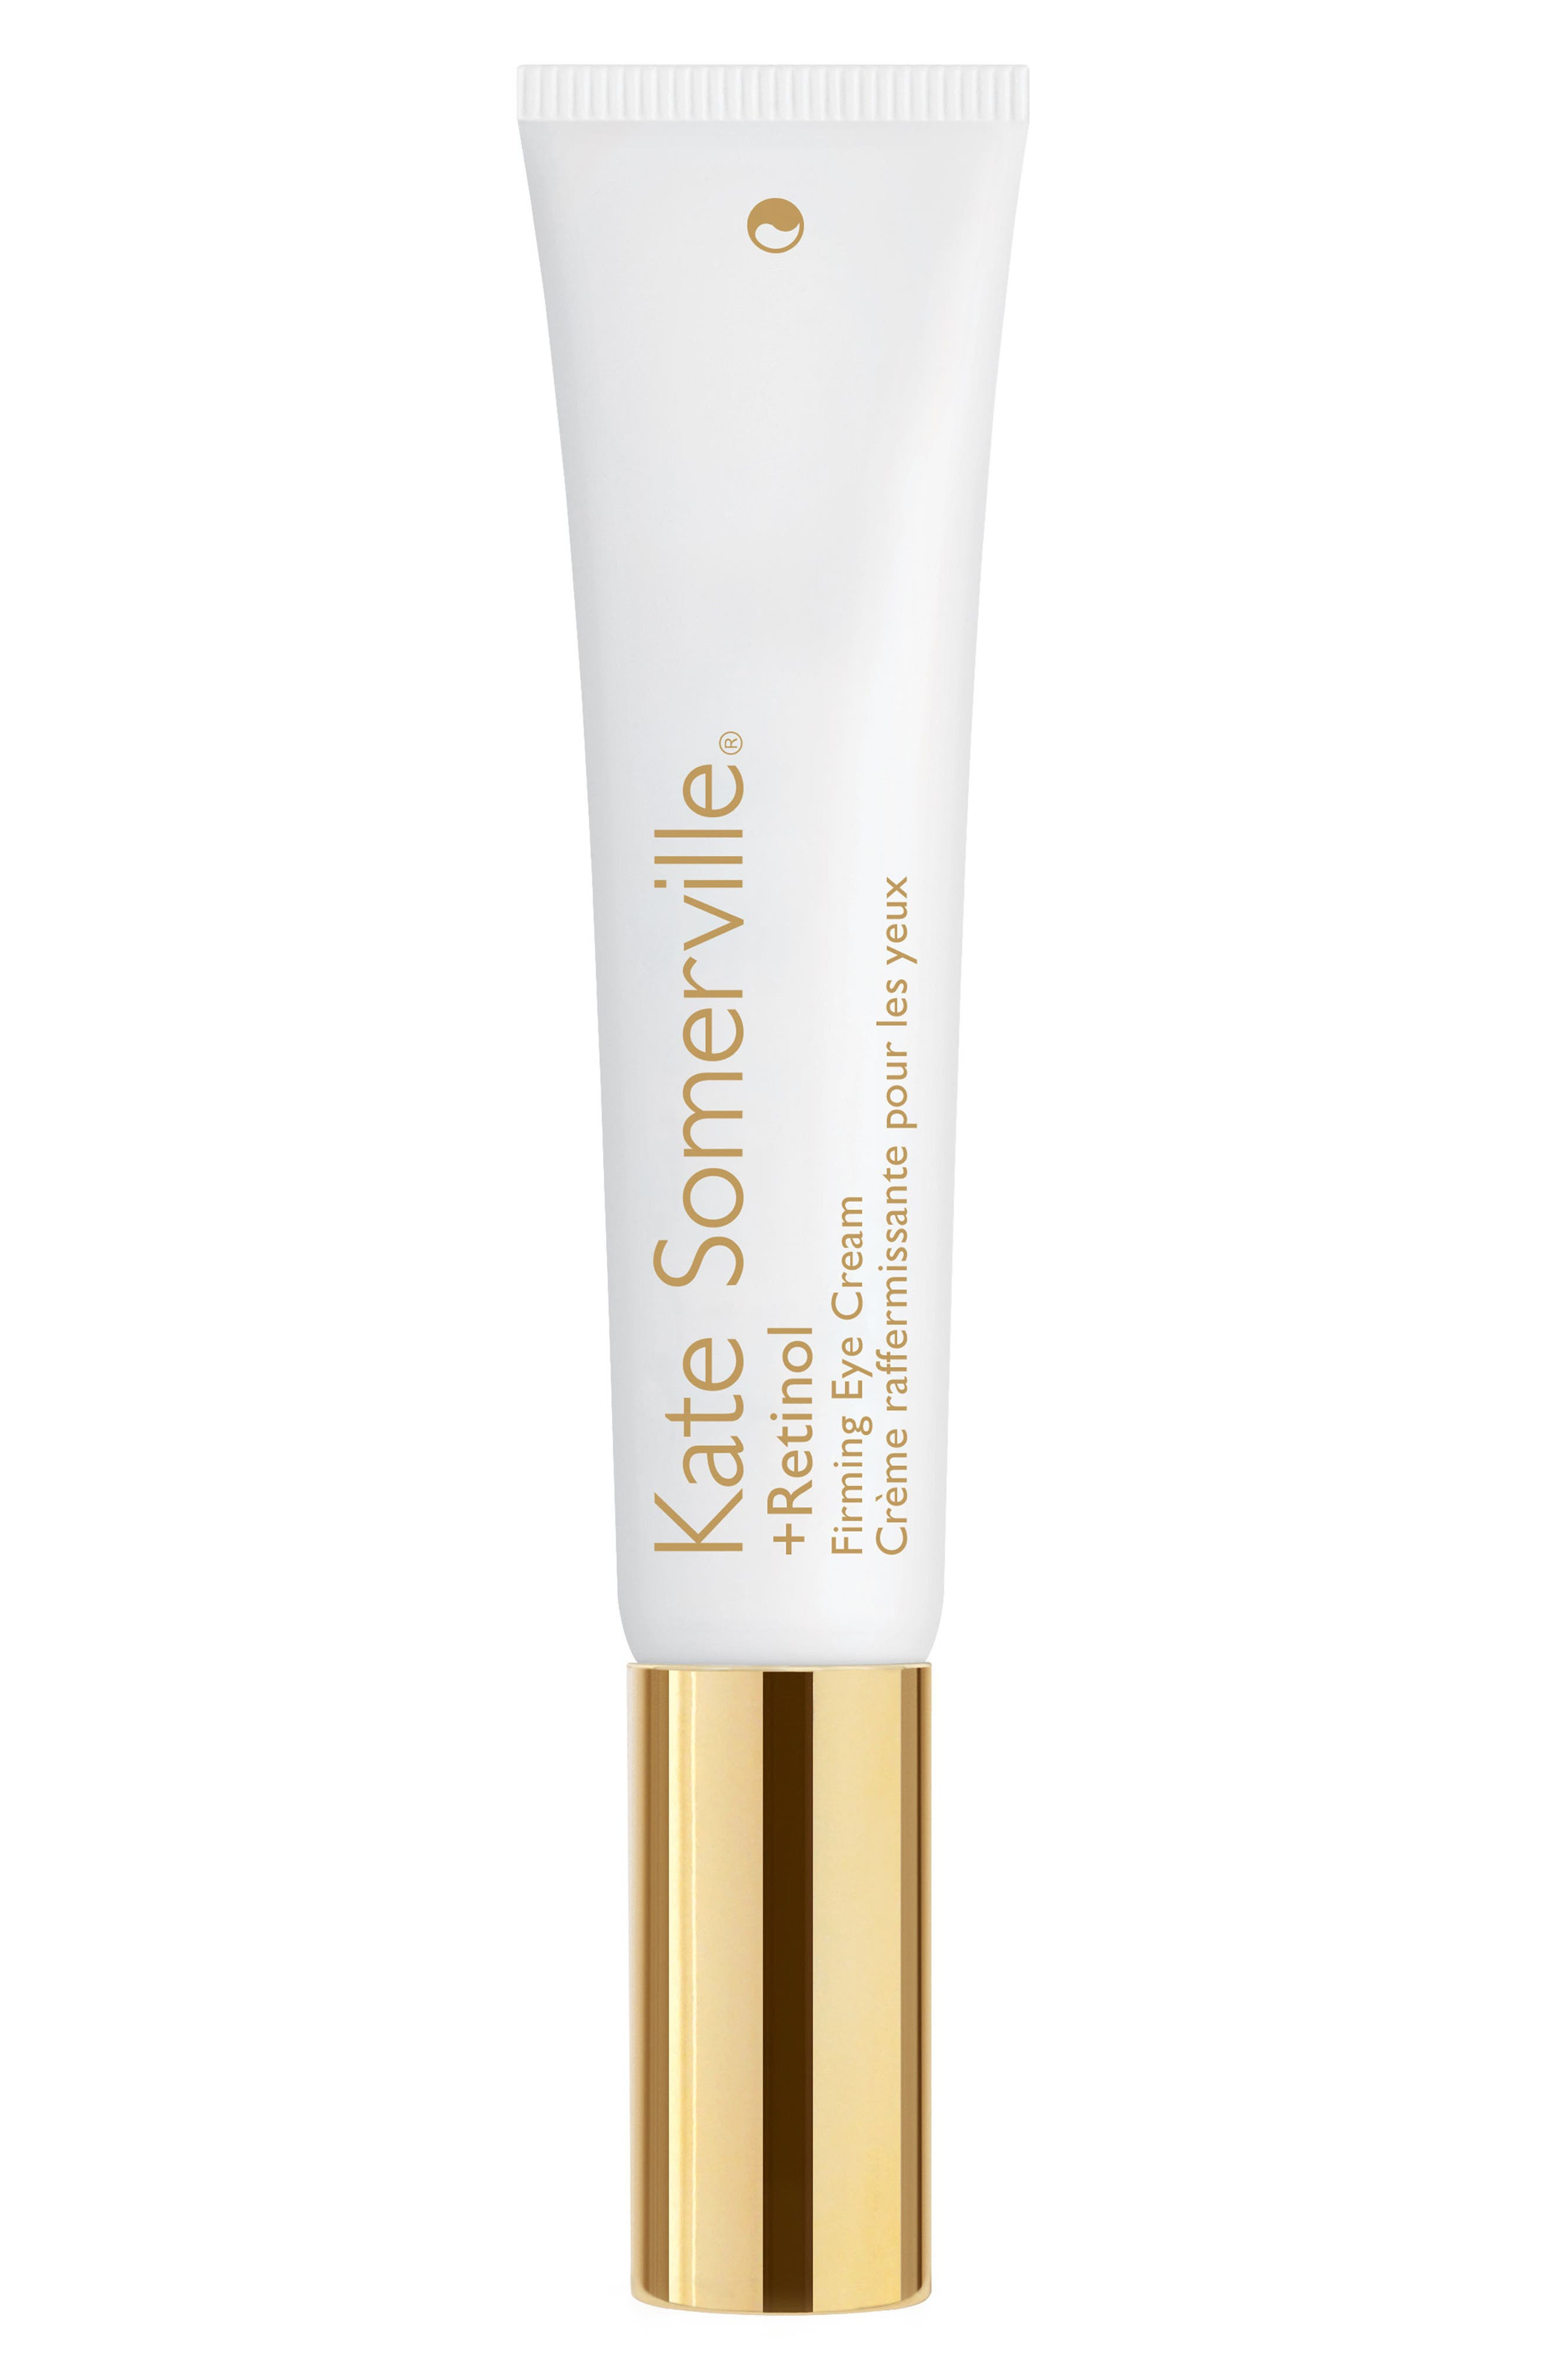 Alternate Image 1 Selected - Kate Somerville® +Retinol Firming Eye Cream